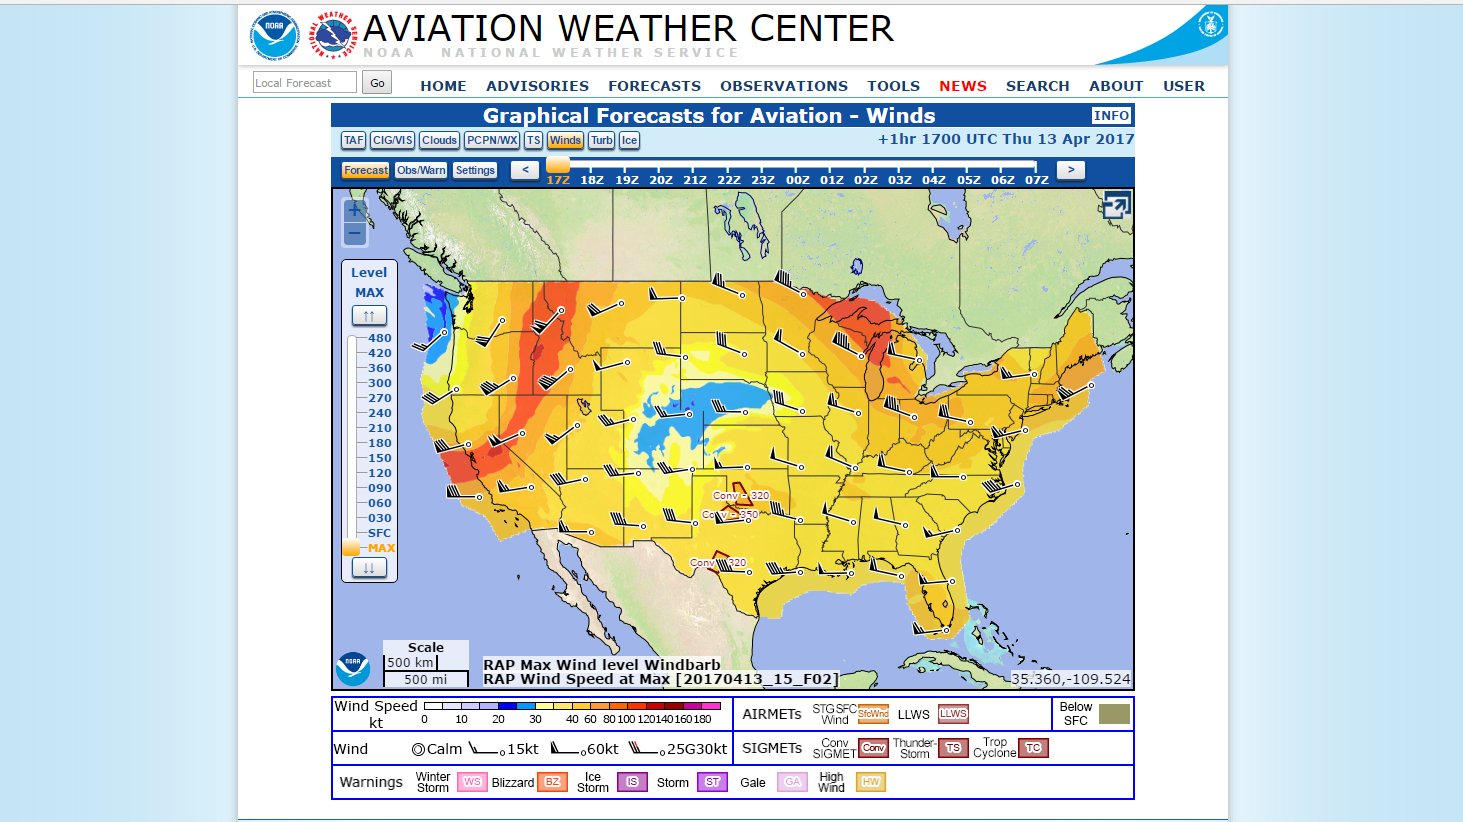 The National Weather Service has turned graphical forecasts operational. Image courtesy of NOAA.